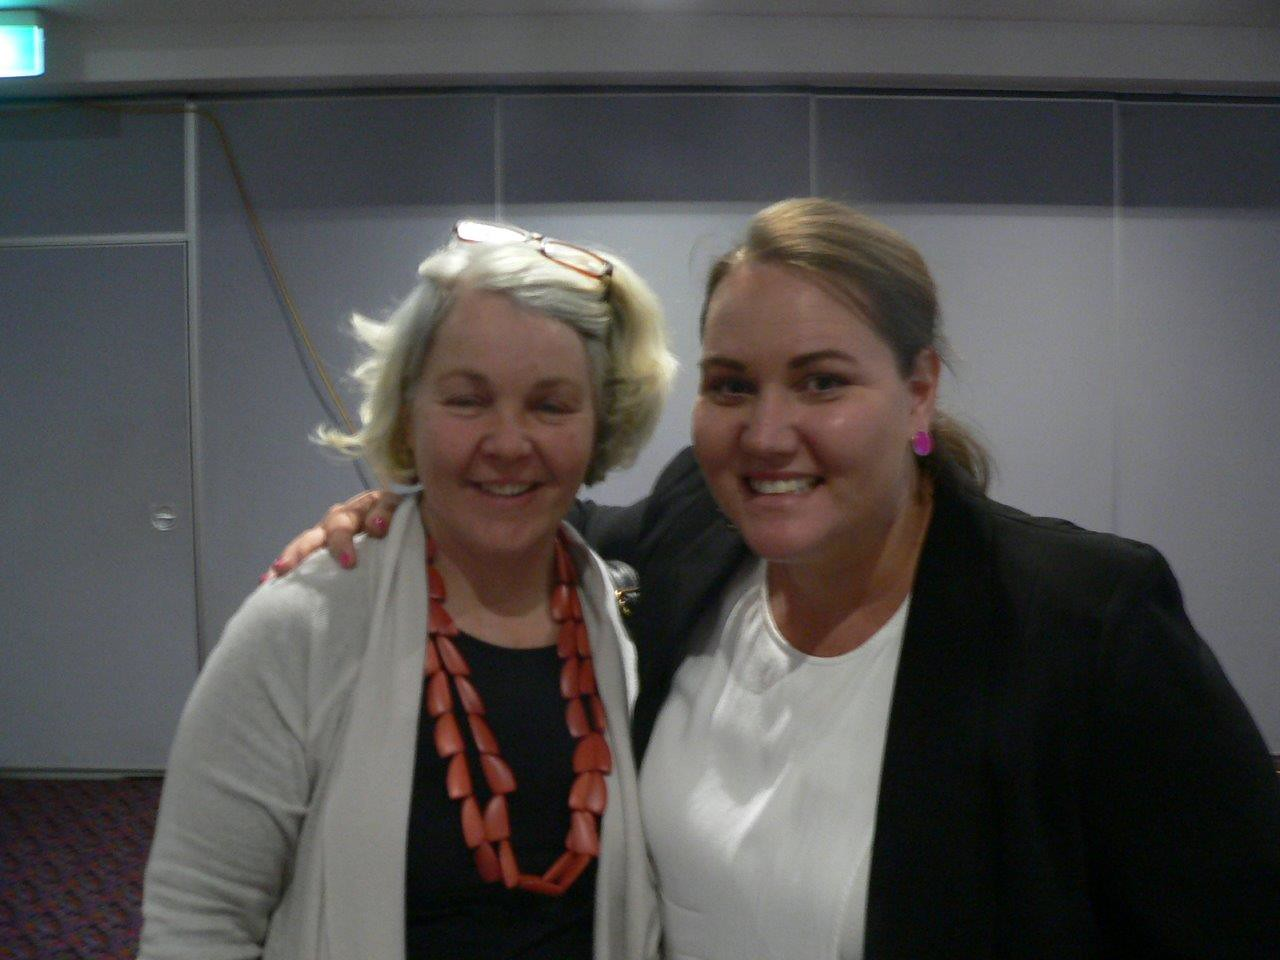 Narromine WHS workshop 08.09.15 Vicki Tuck and Bec Fing